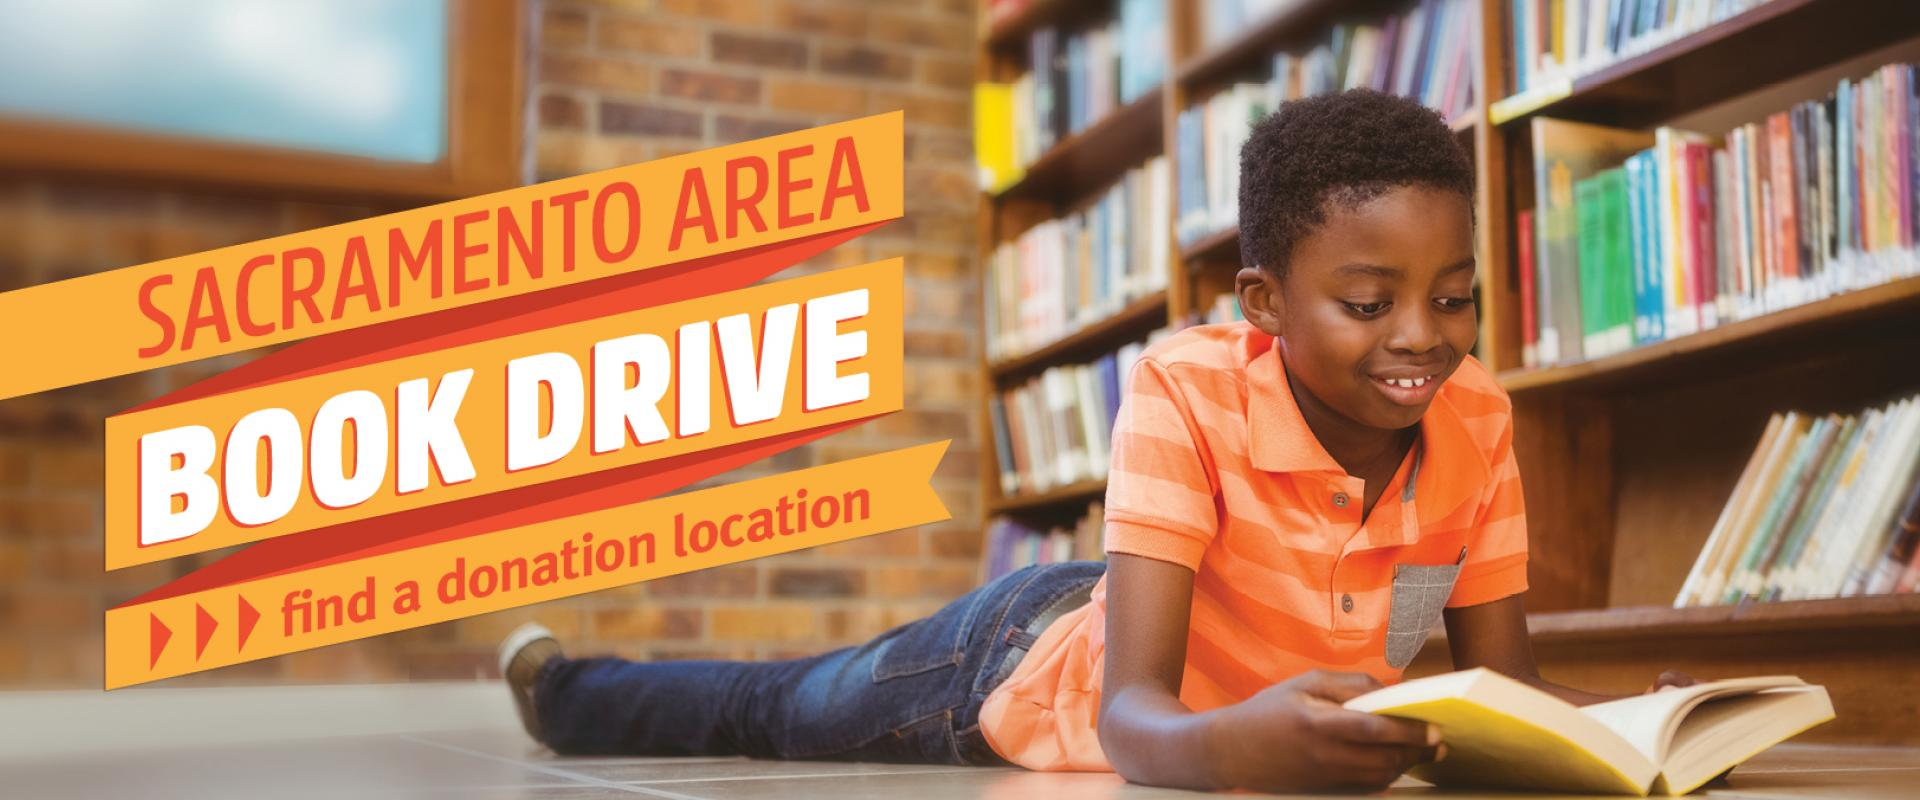 Image of Book Drive